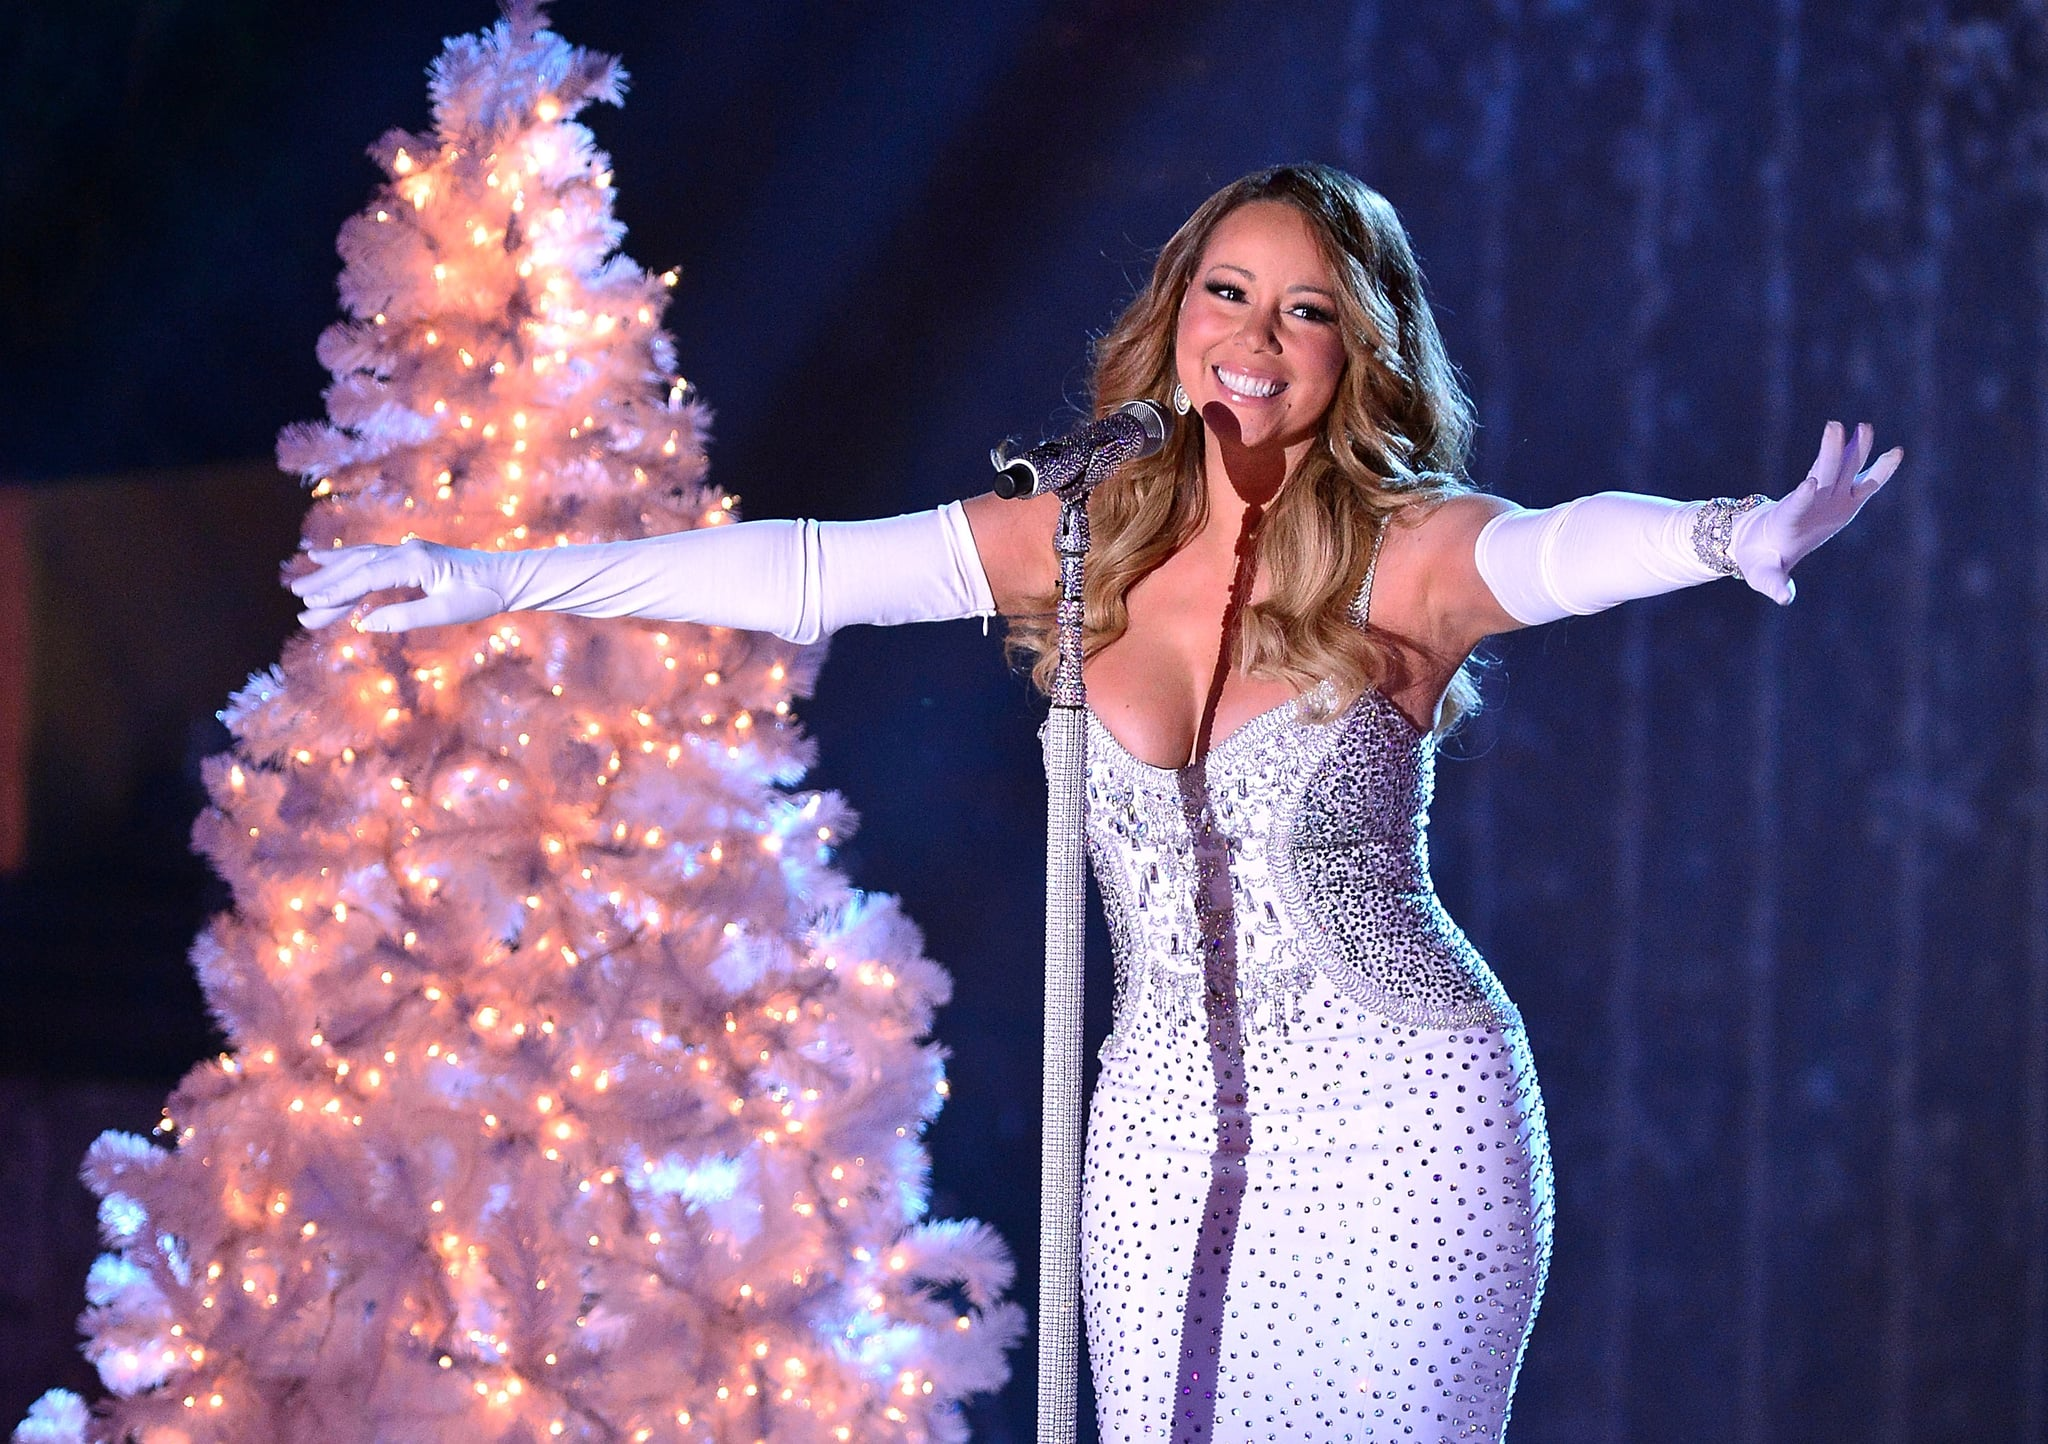 NEW YORK, NY - DECEMBER 03:  Mariah Carey performs at the 81st Annual Rockefeller Centre Christmas Tree Lighting Pre-Tape at Rockefeller Centre on December 3, 2013 in New York City.  (Photo by James Devaney/WireImage)